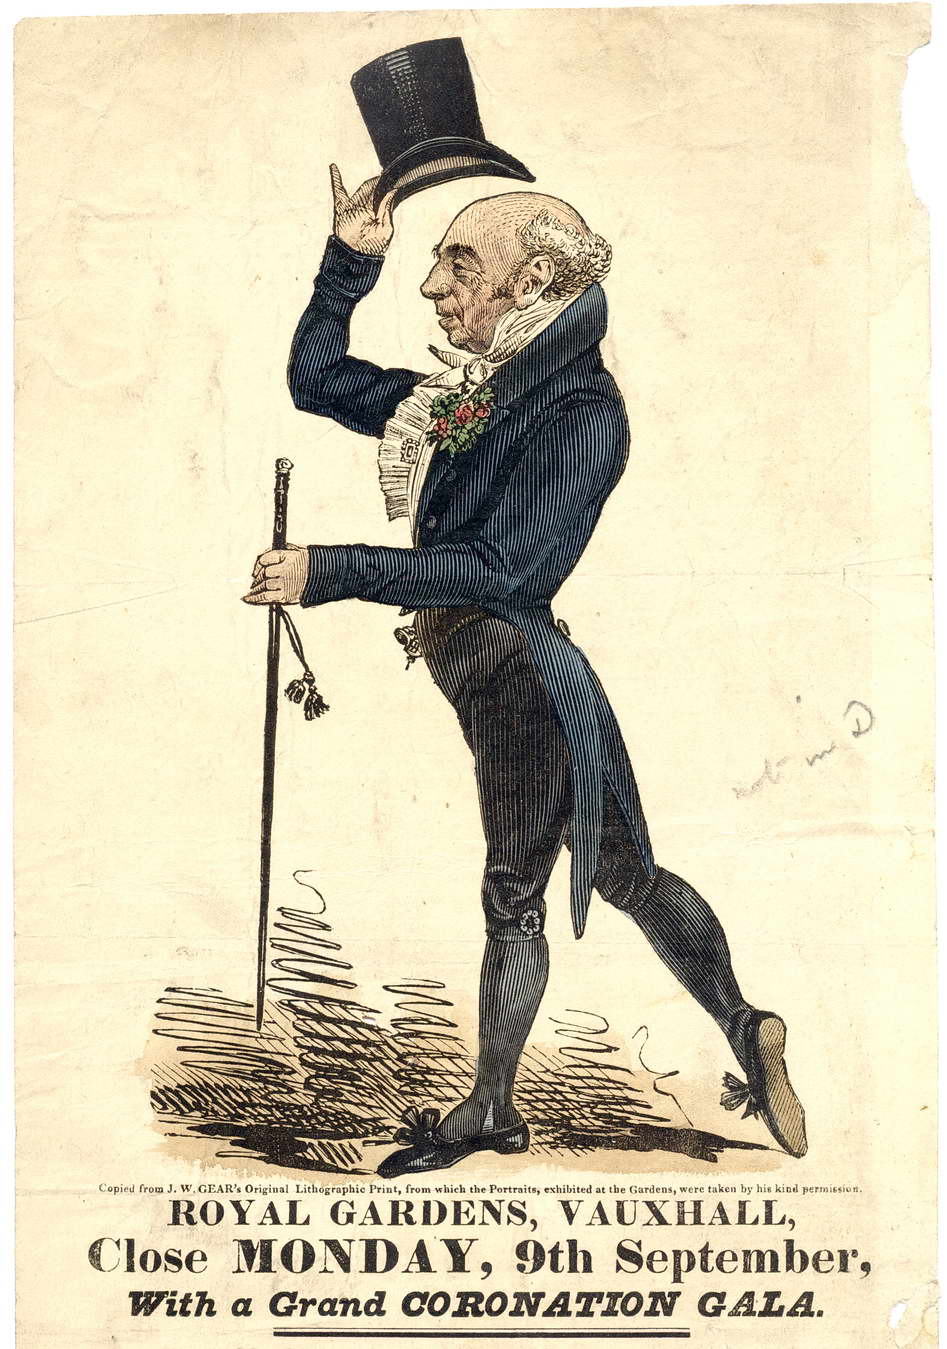 C. H. Simpson, MC of Vauxhall Gardens 1833